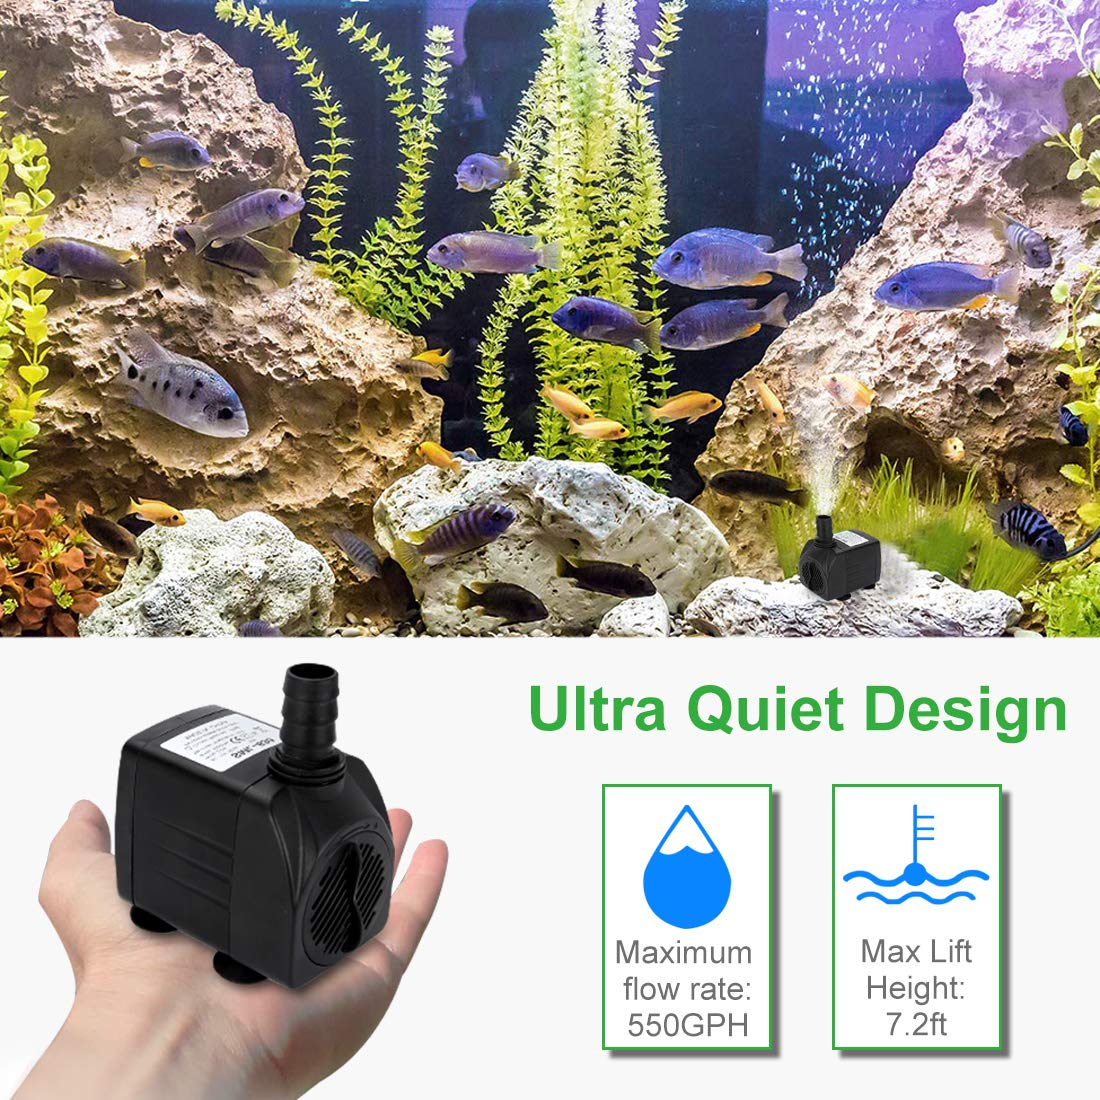 GROWNEER 2 Packs 550GPH Submersible Pump 30W Ultra Quiet Fountain Water Pump, 2000L/H, with 7.2ft High Lift, 3 Nozzles for Aquarium, Fish Tank, Pond, Hydroponics, Statuary